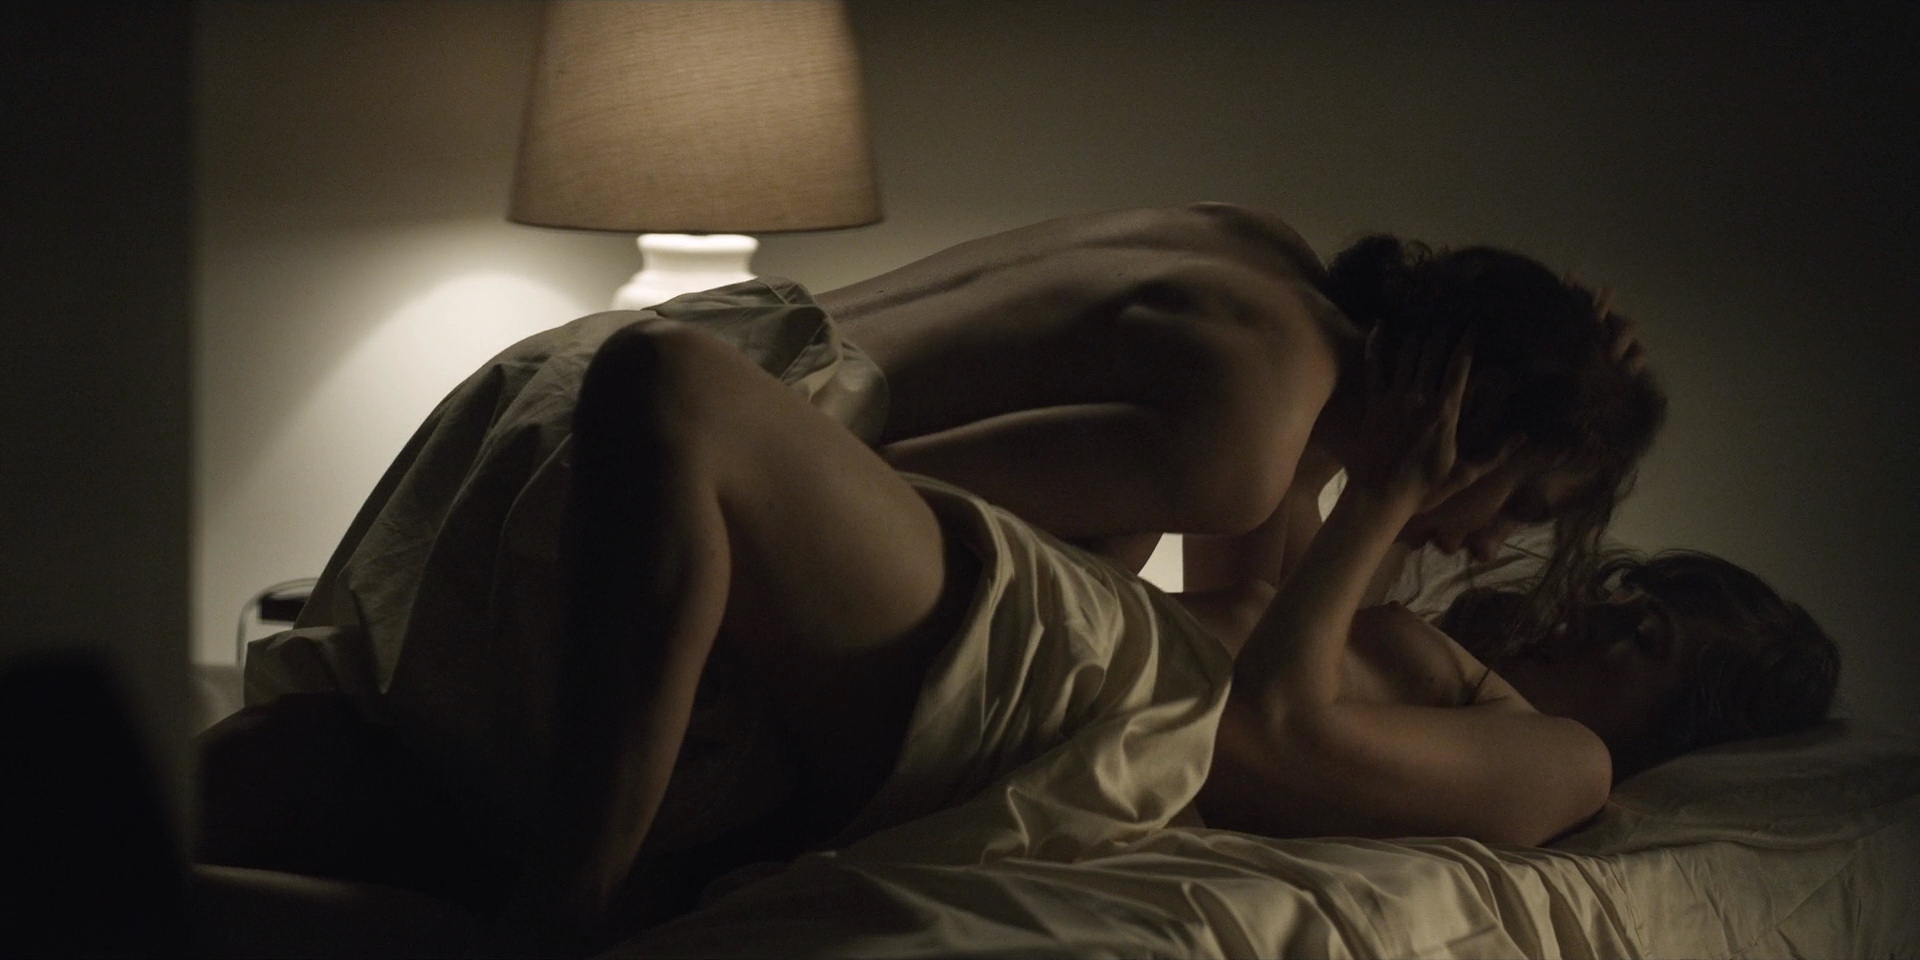 House of cards nude scene lesbian